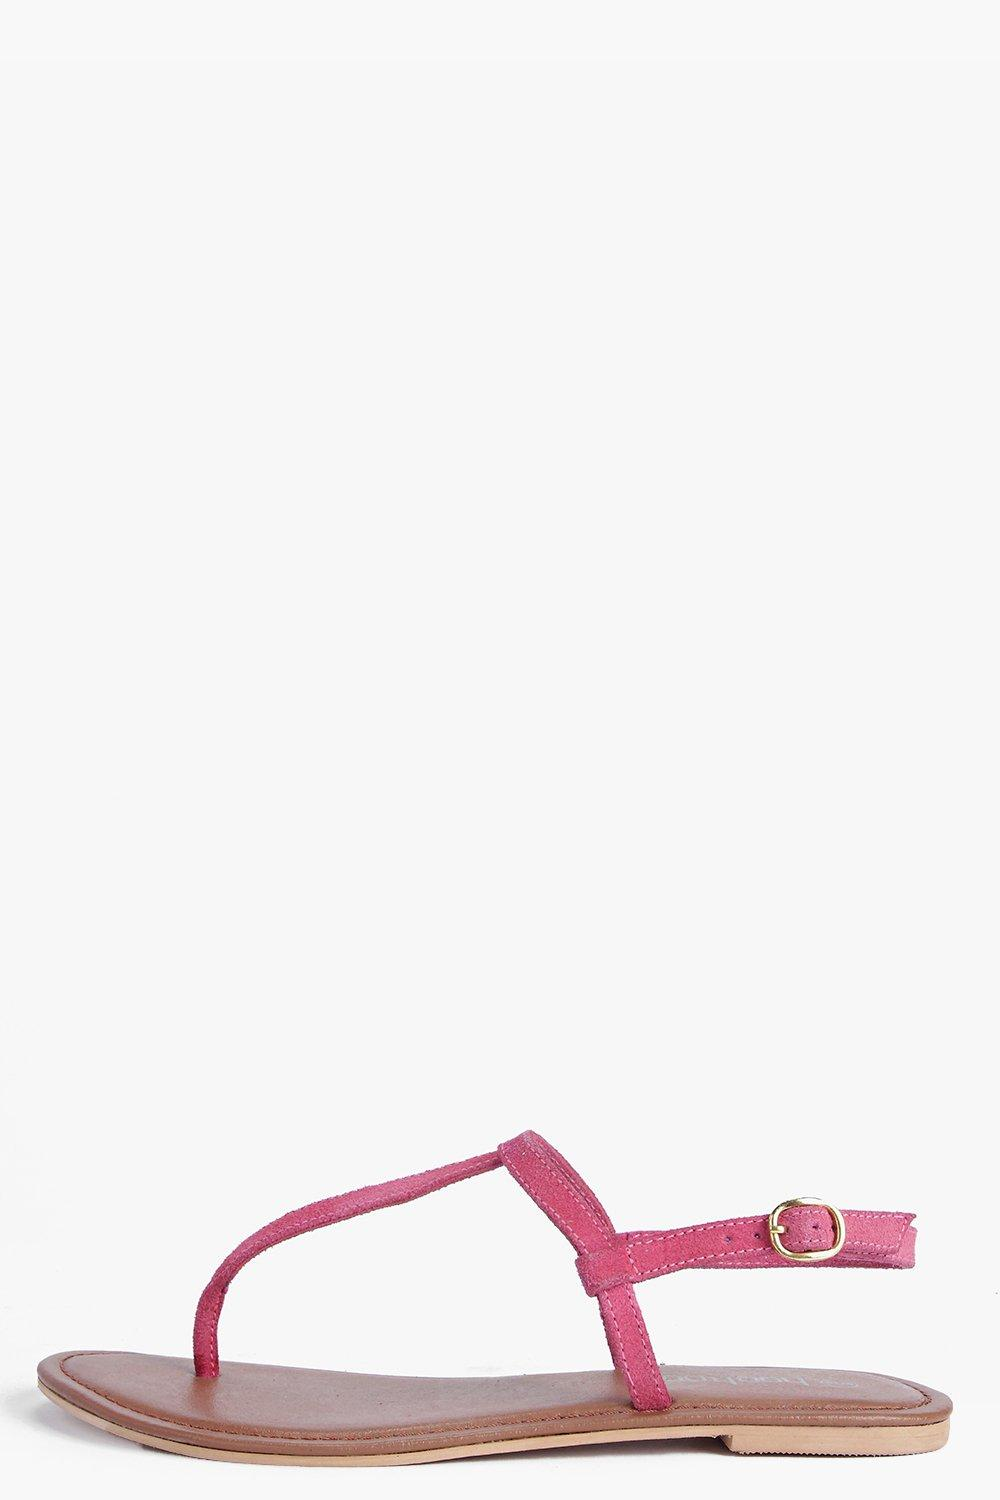 Boutique Layla Plain Toe Thong Suede Sandal